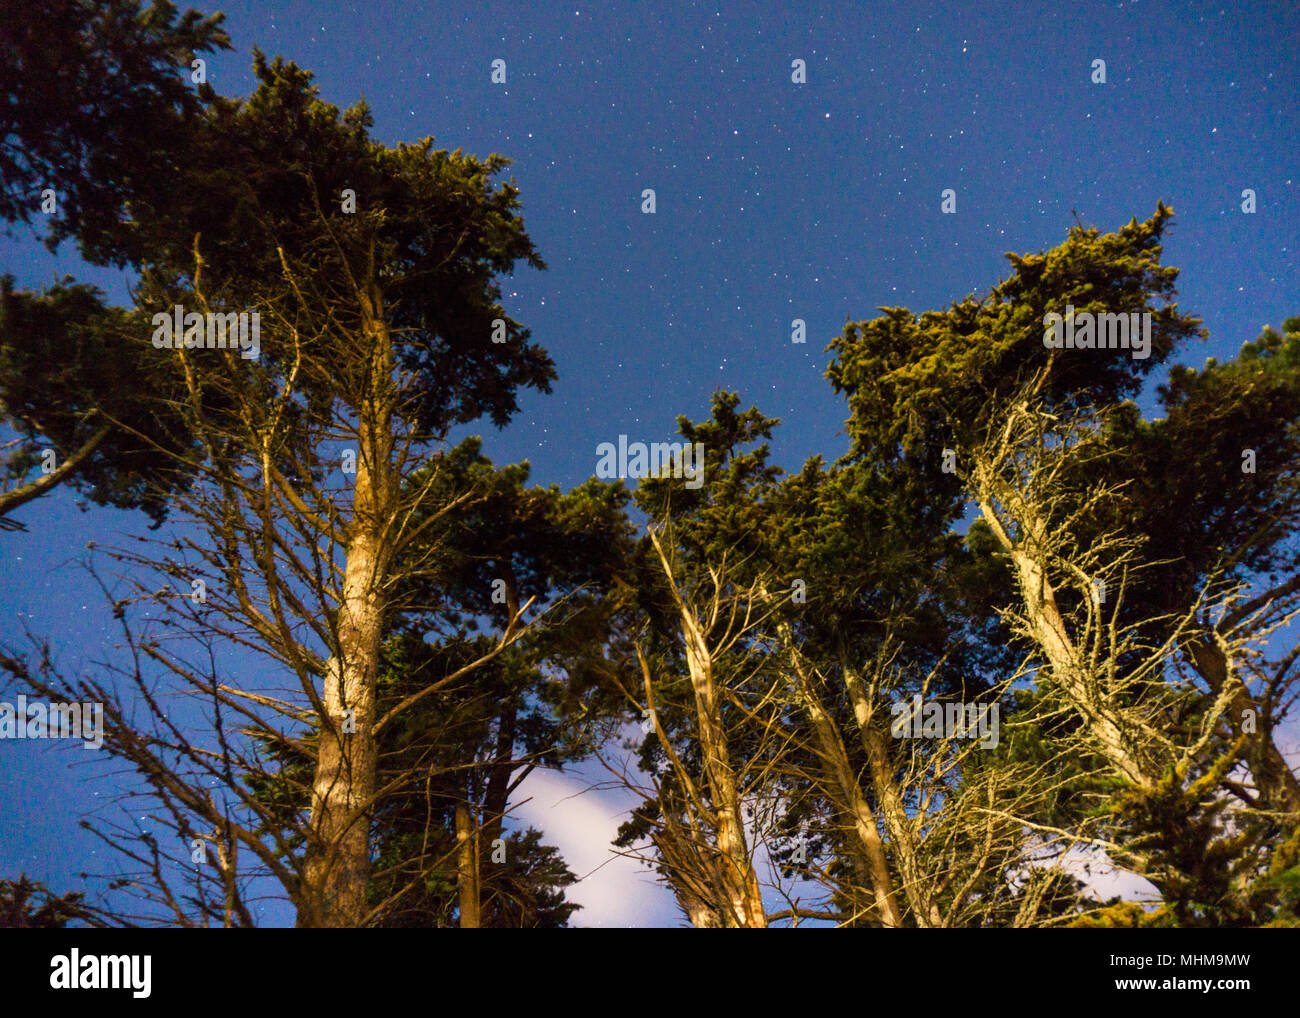 The stars in the forest - Stock Image